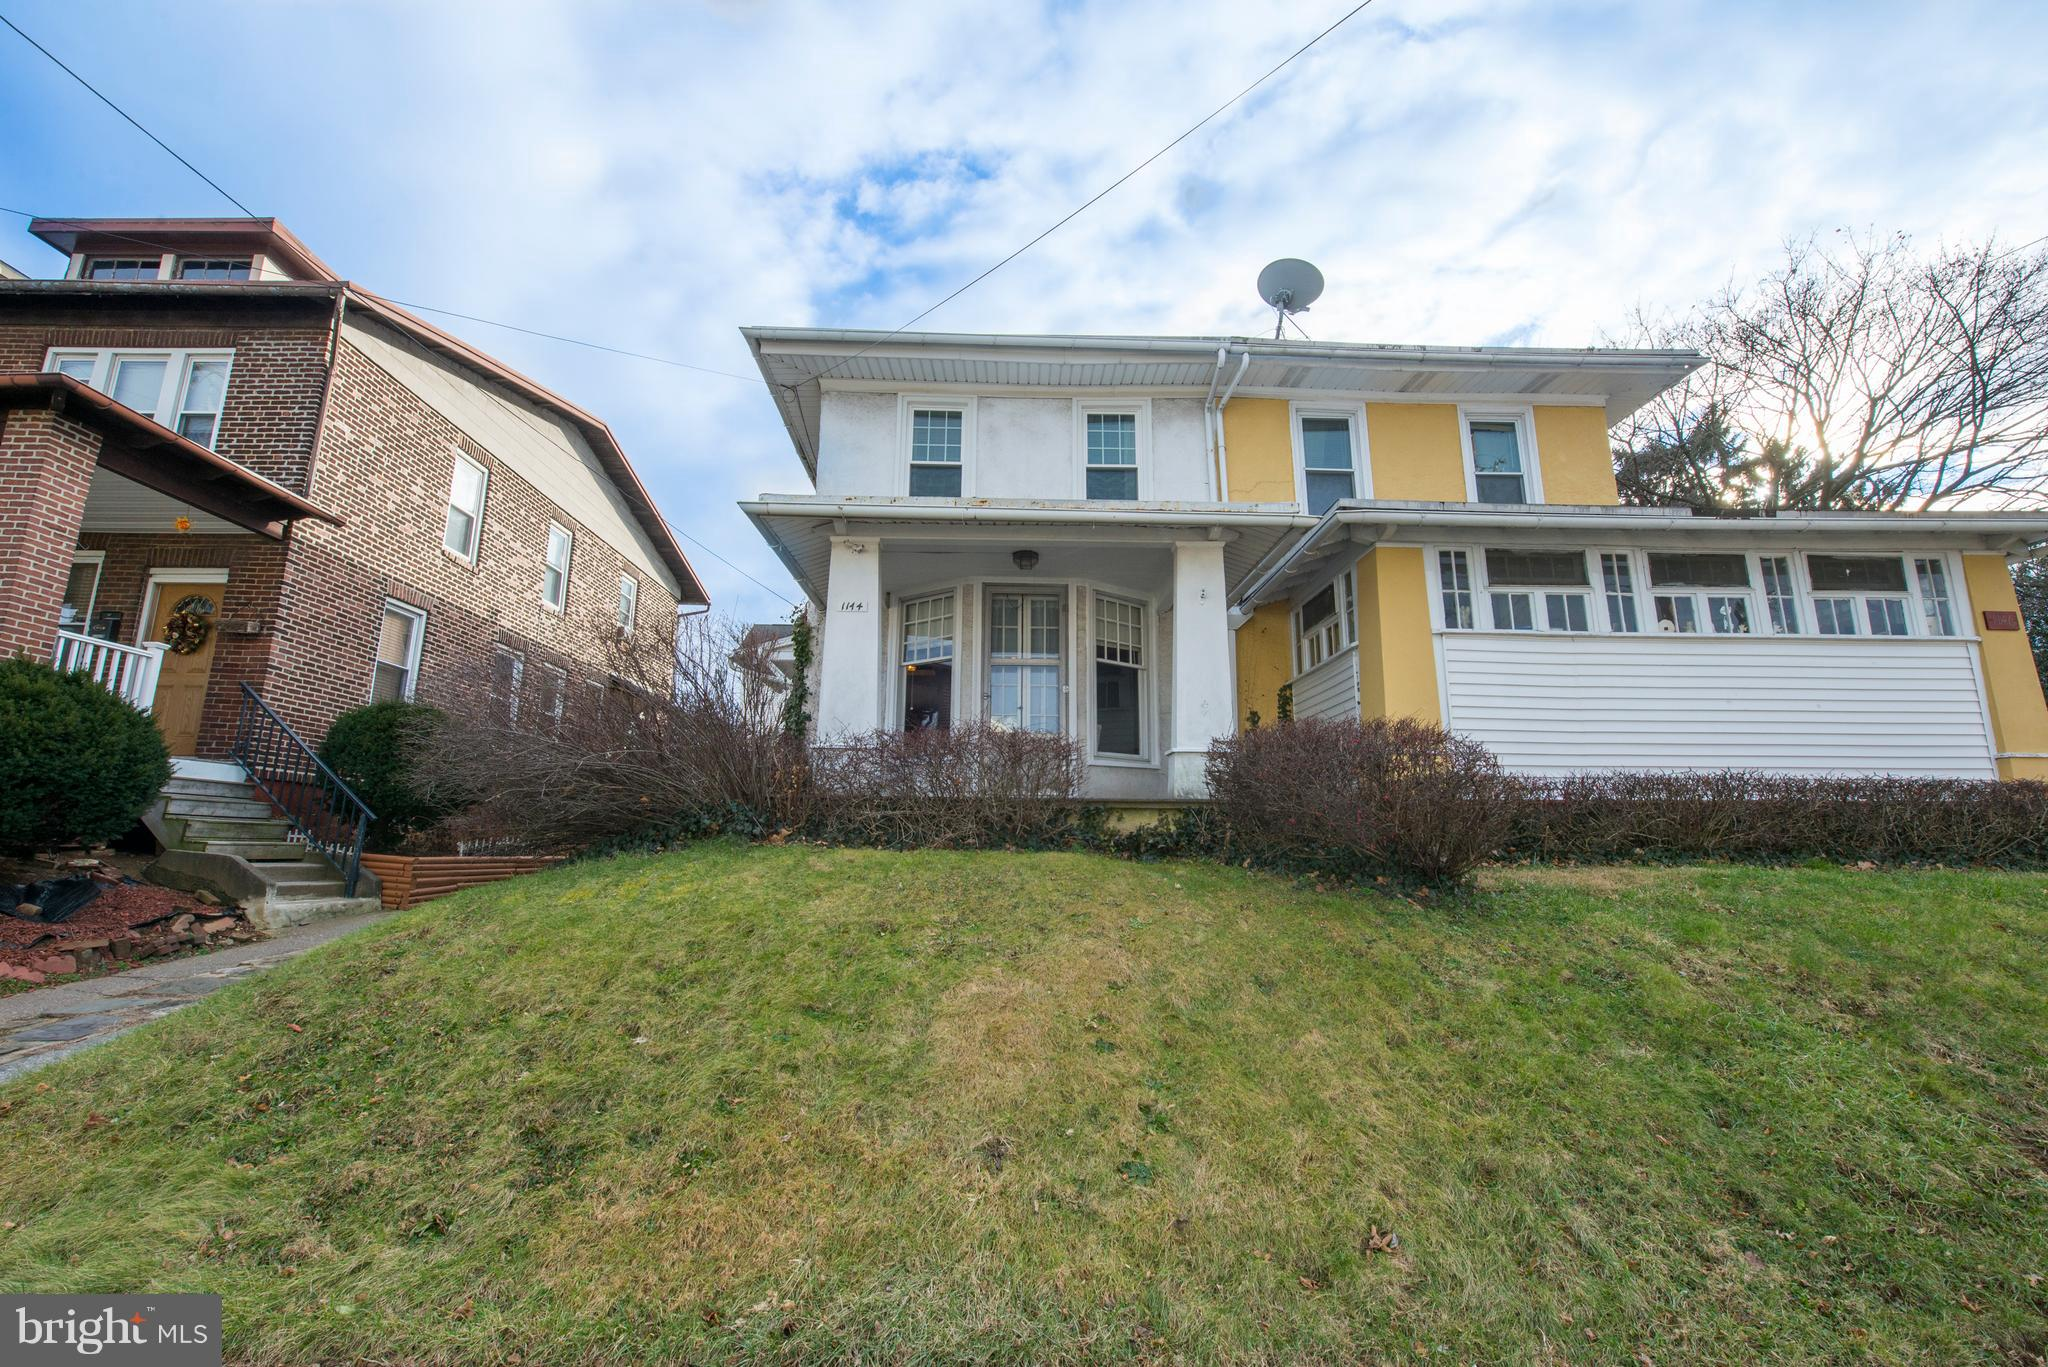 1144 W WYOMING STREET, ALLENTOWN, PA 18103